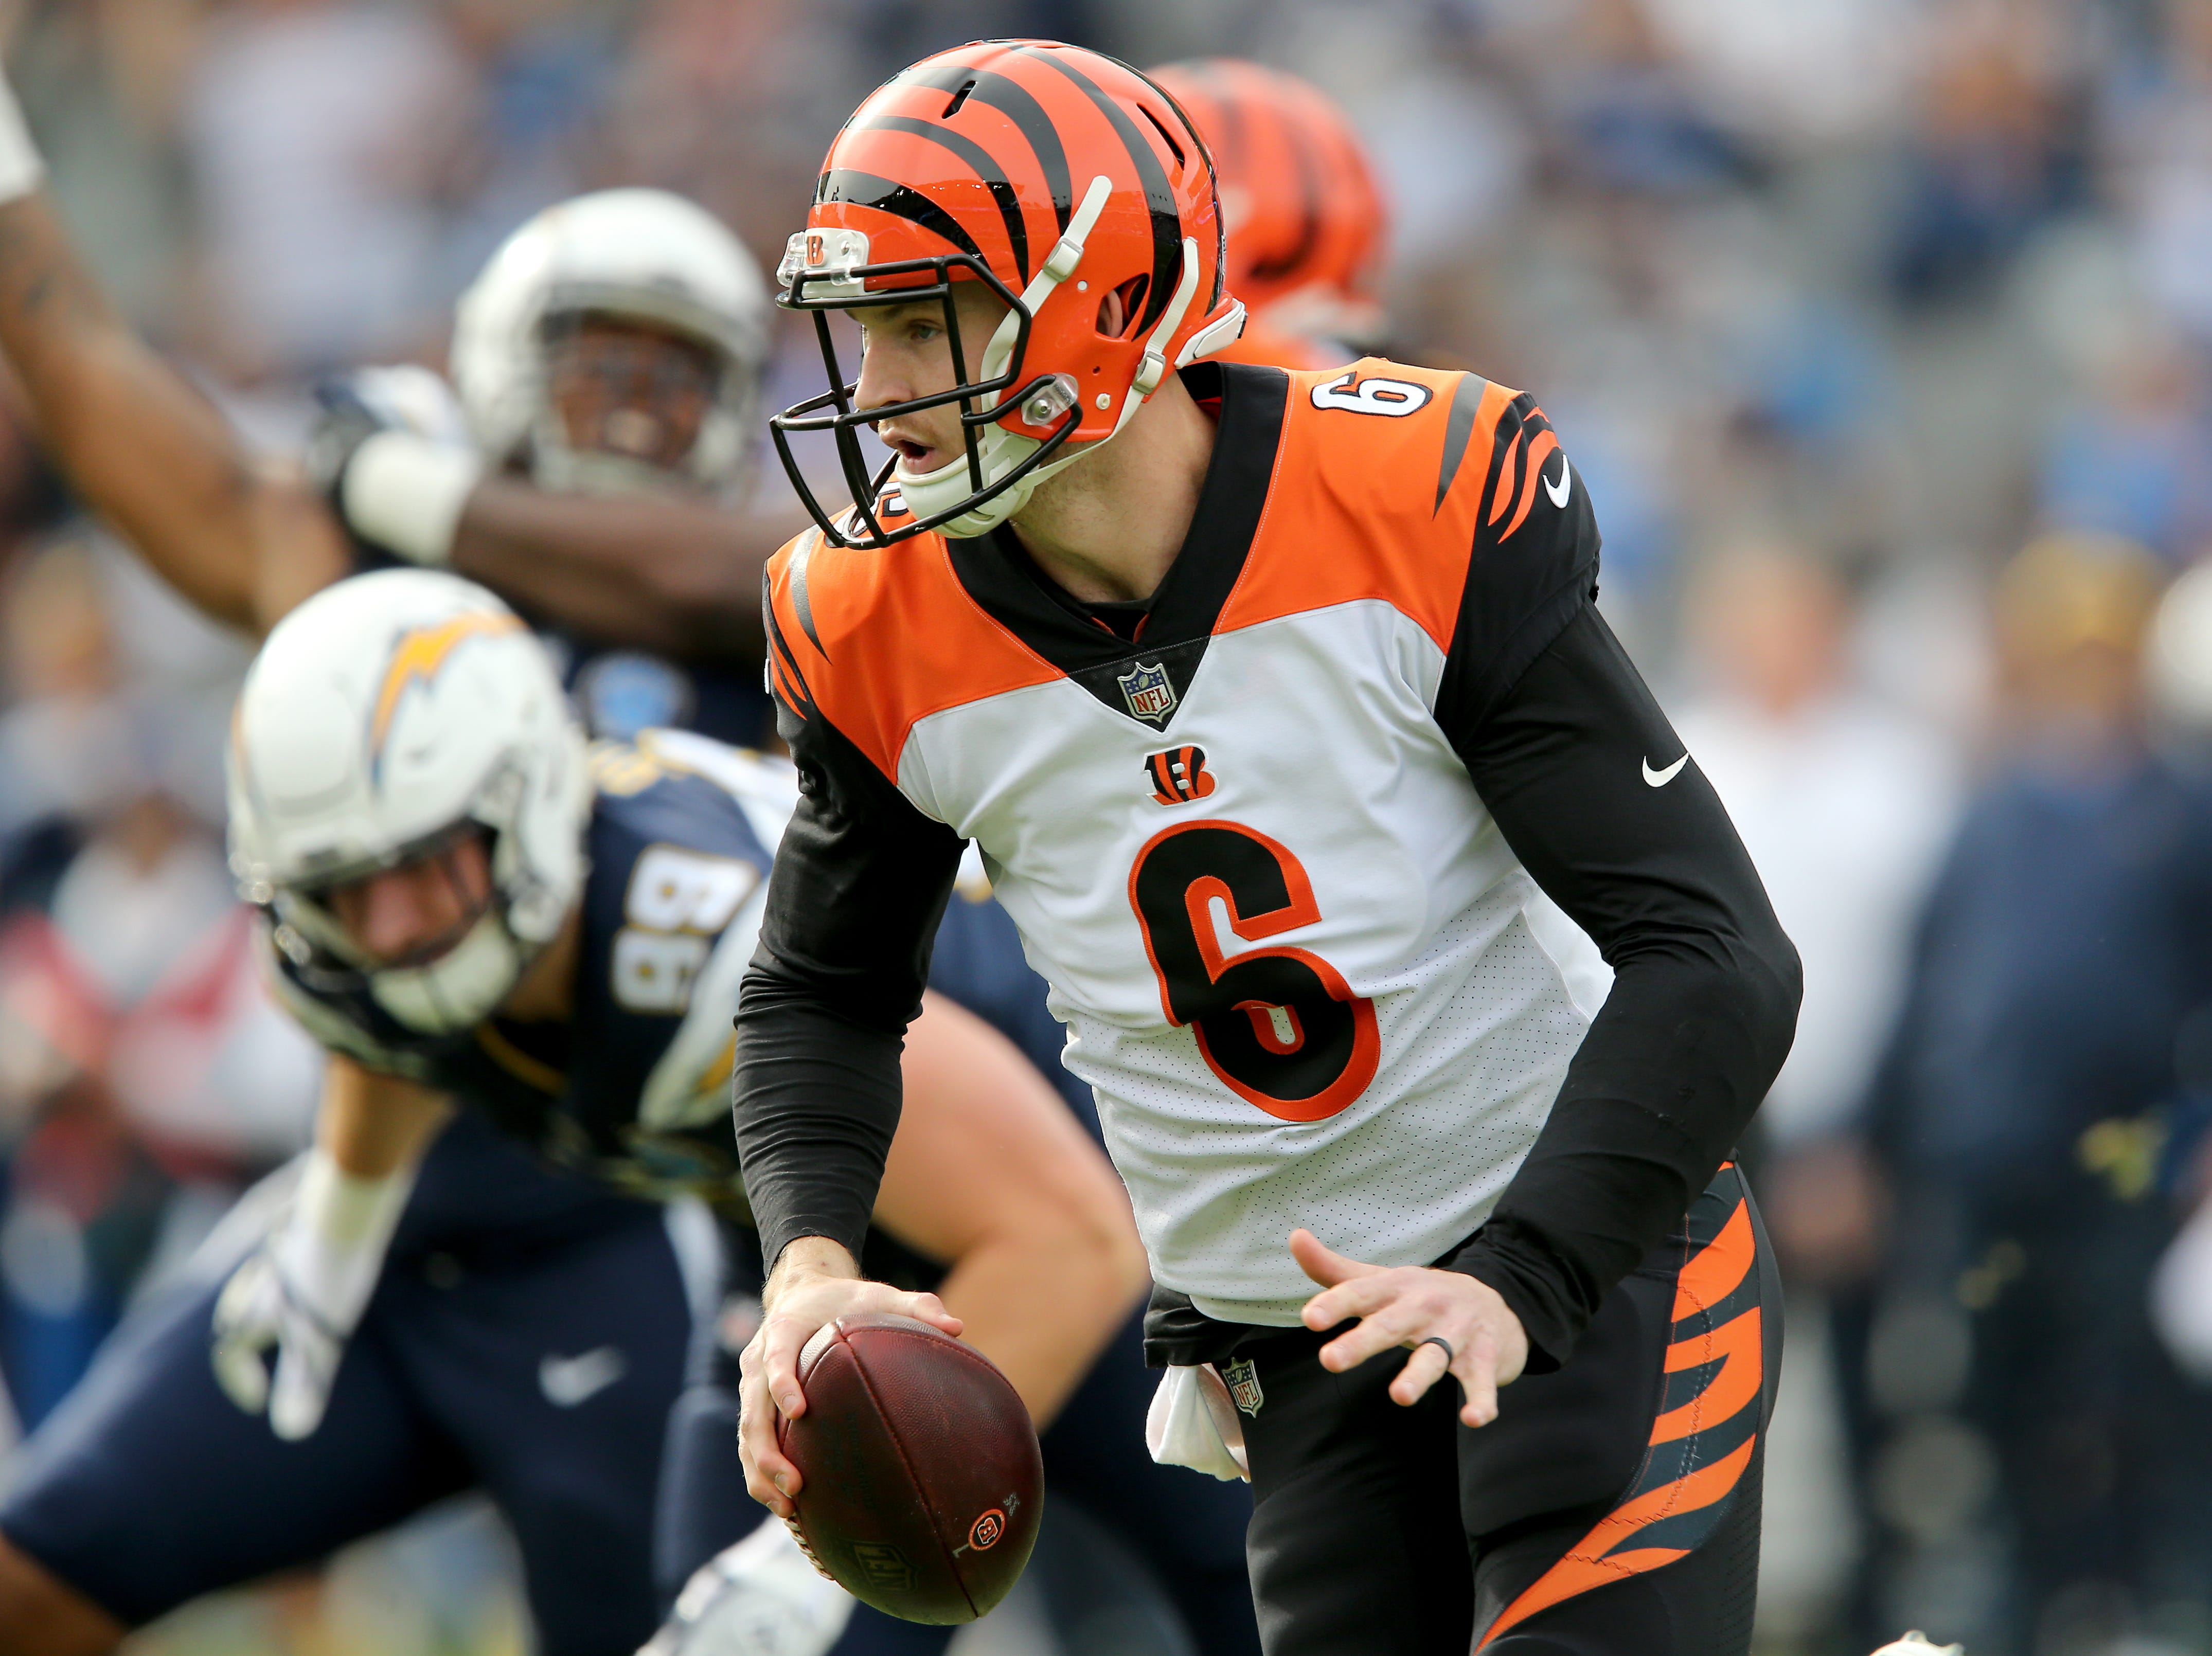 Cincinnati Bengals quarterback Jeff Driskel (6) runs out of the pocket in the first quarter of a Week 14 NFL football game against the Los Angeles Chargers, Sunday, Dec. 9, 2018, at StubHub Center in Carson, California.